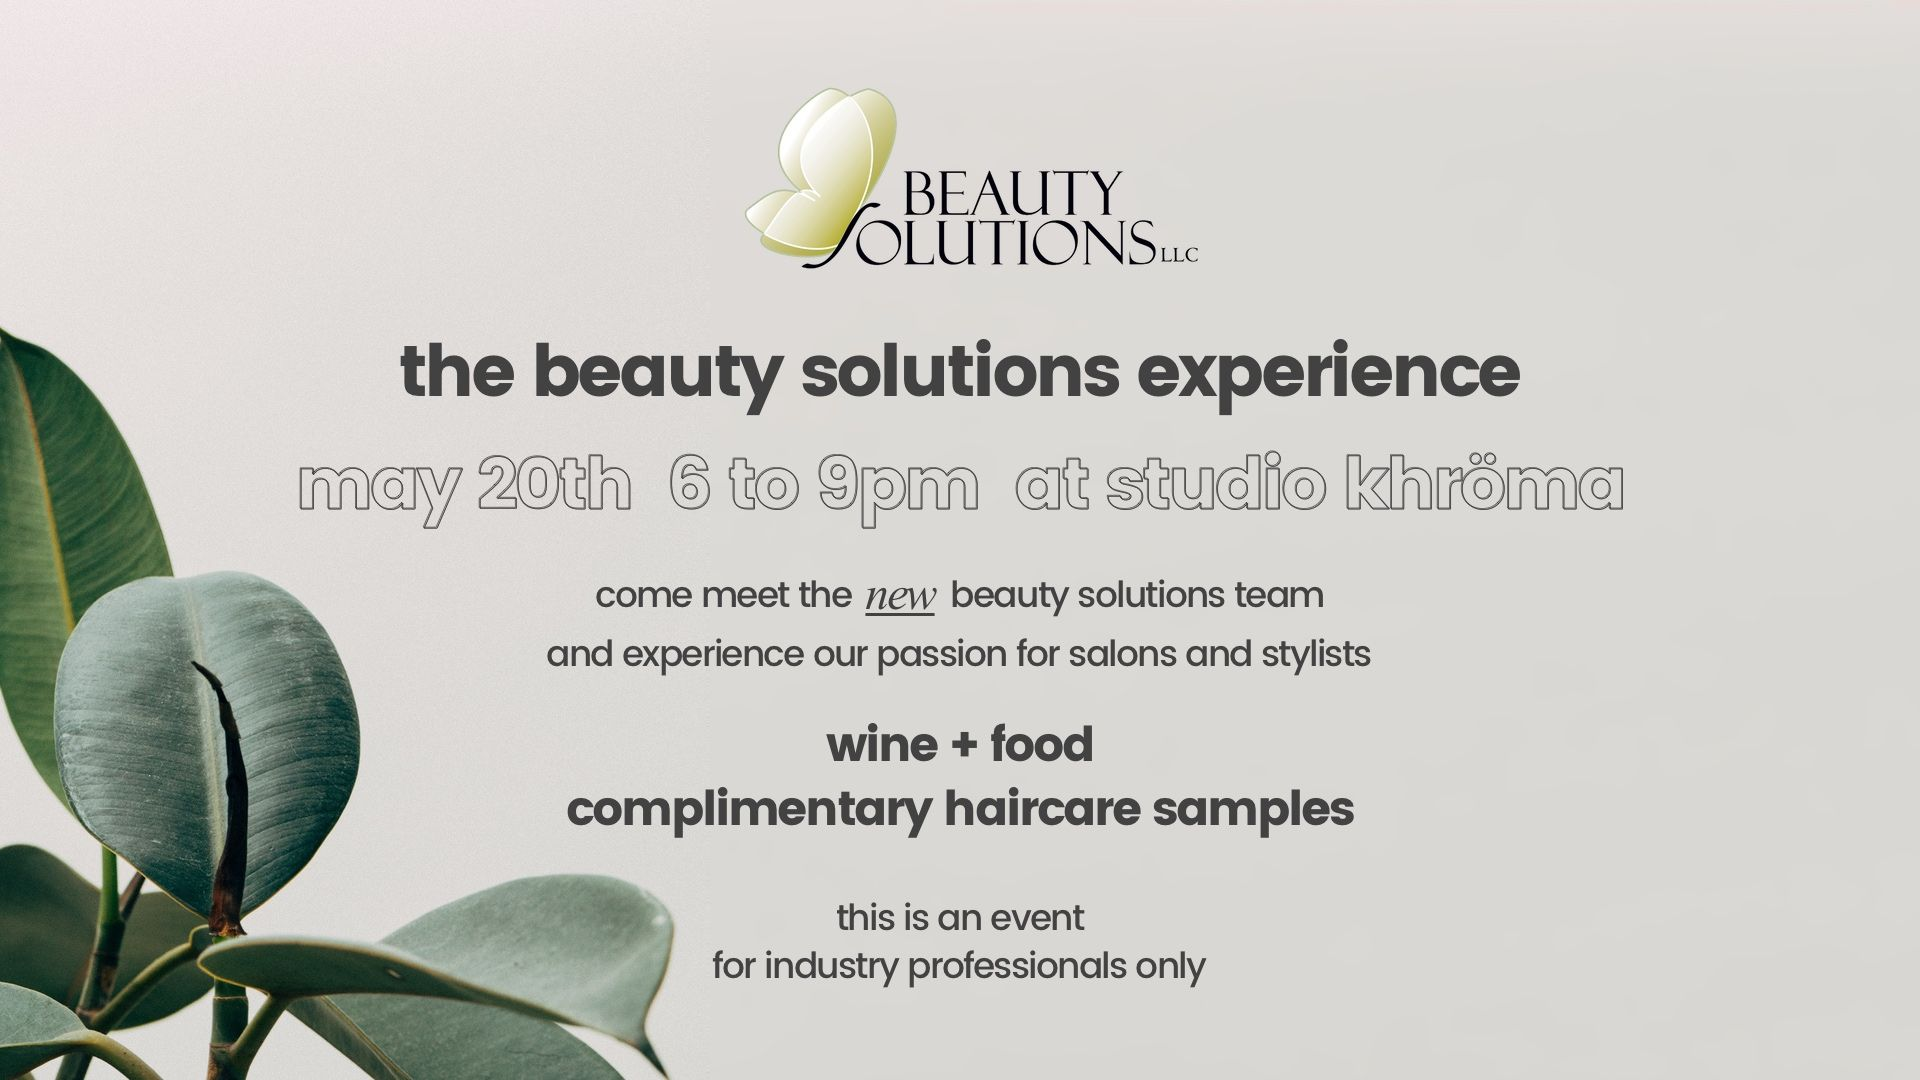 beauty solutions experience at studio khroma